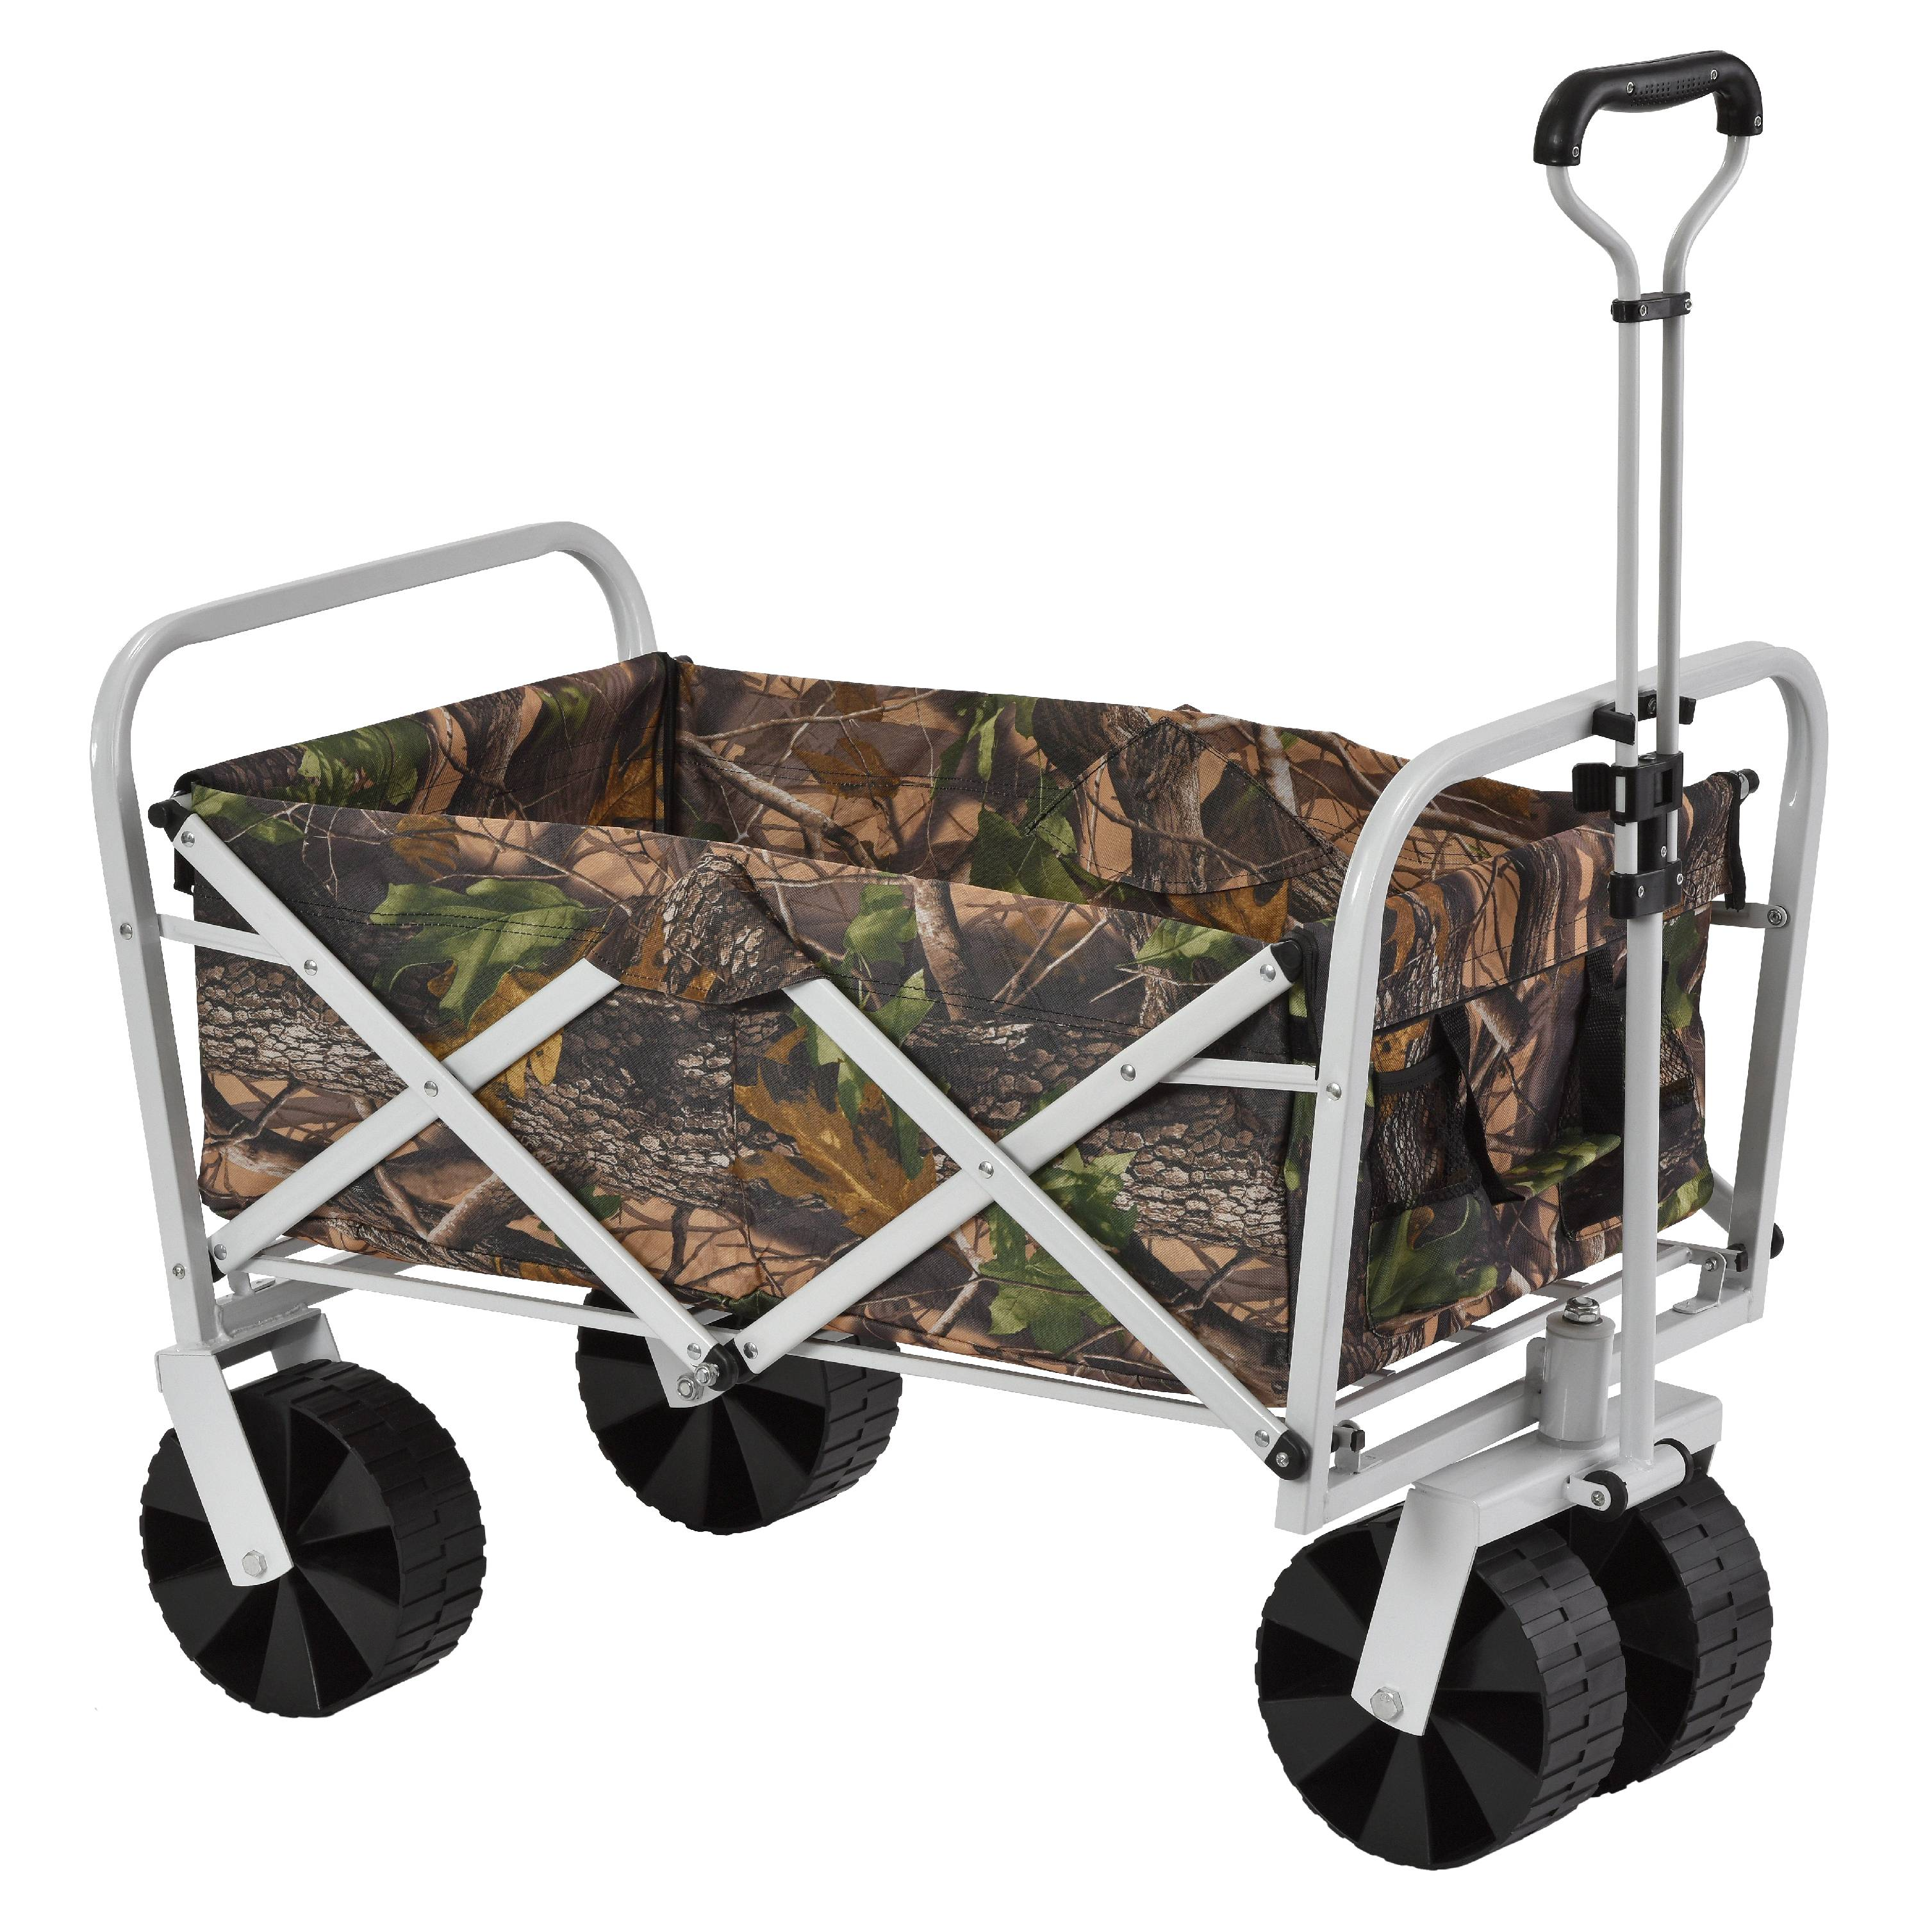 Collapsible Folding Utility Wagon, Camo